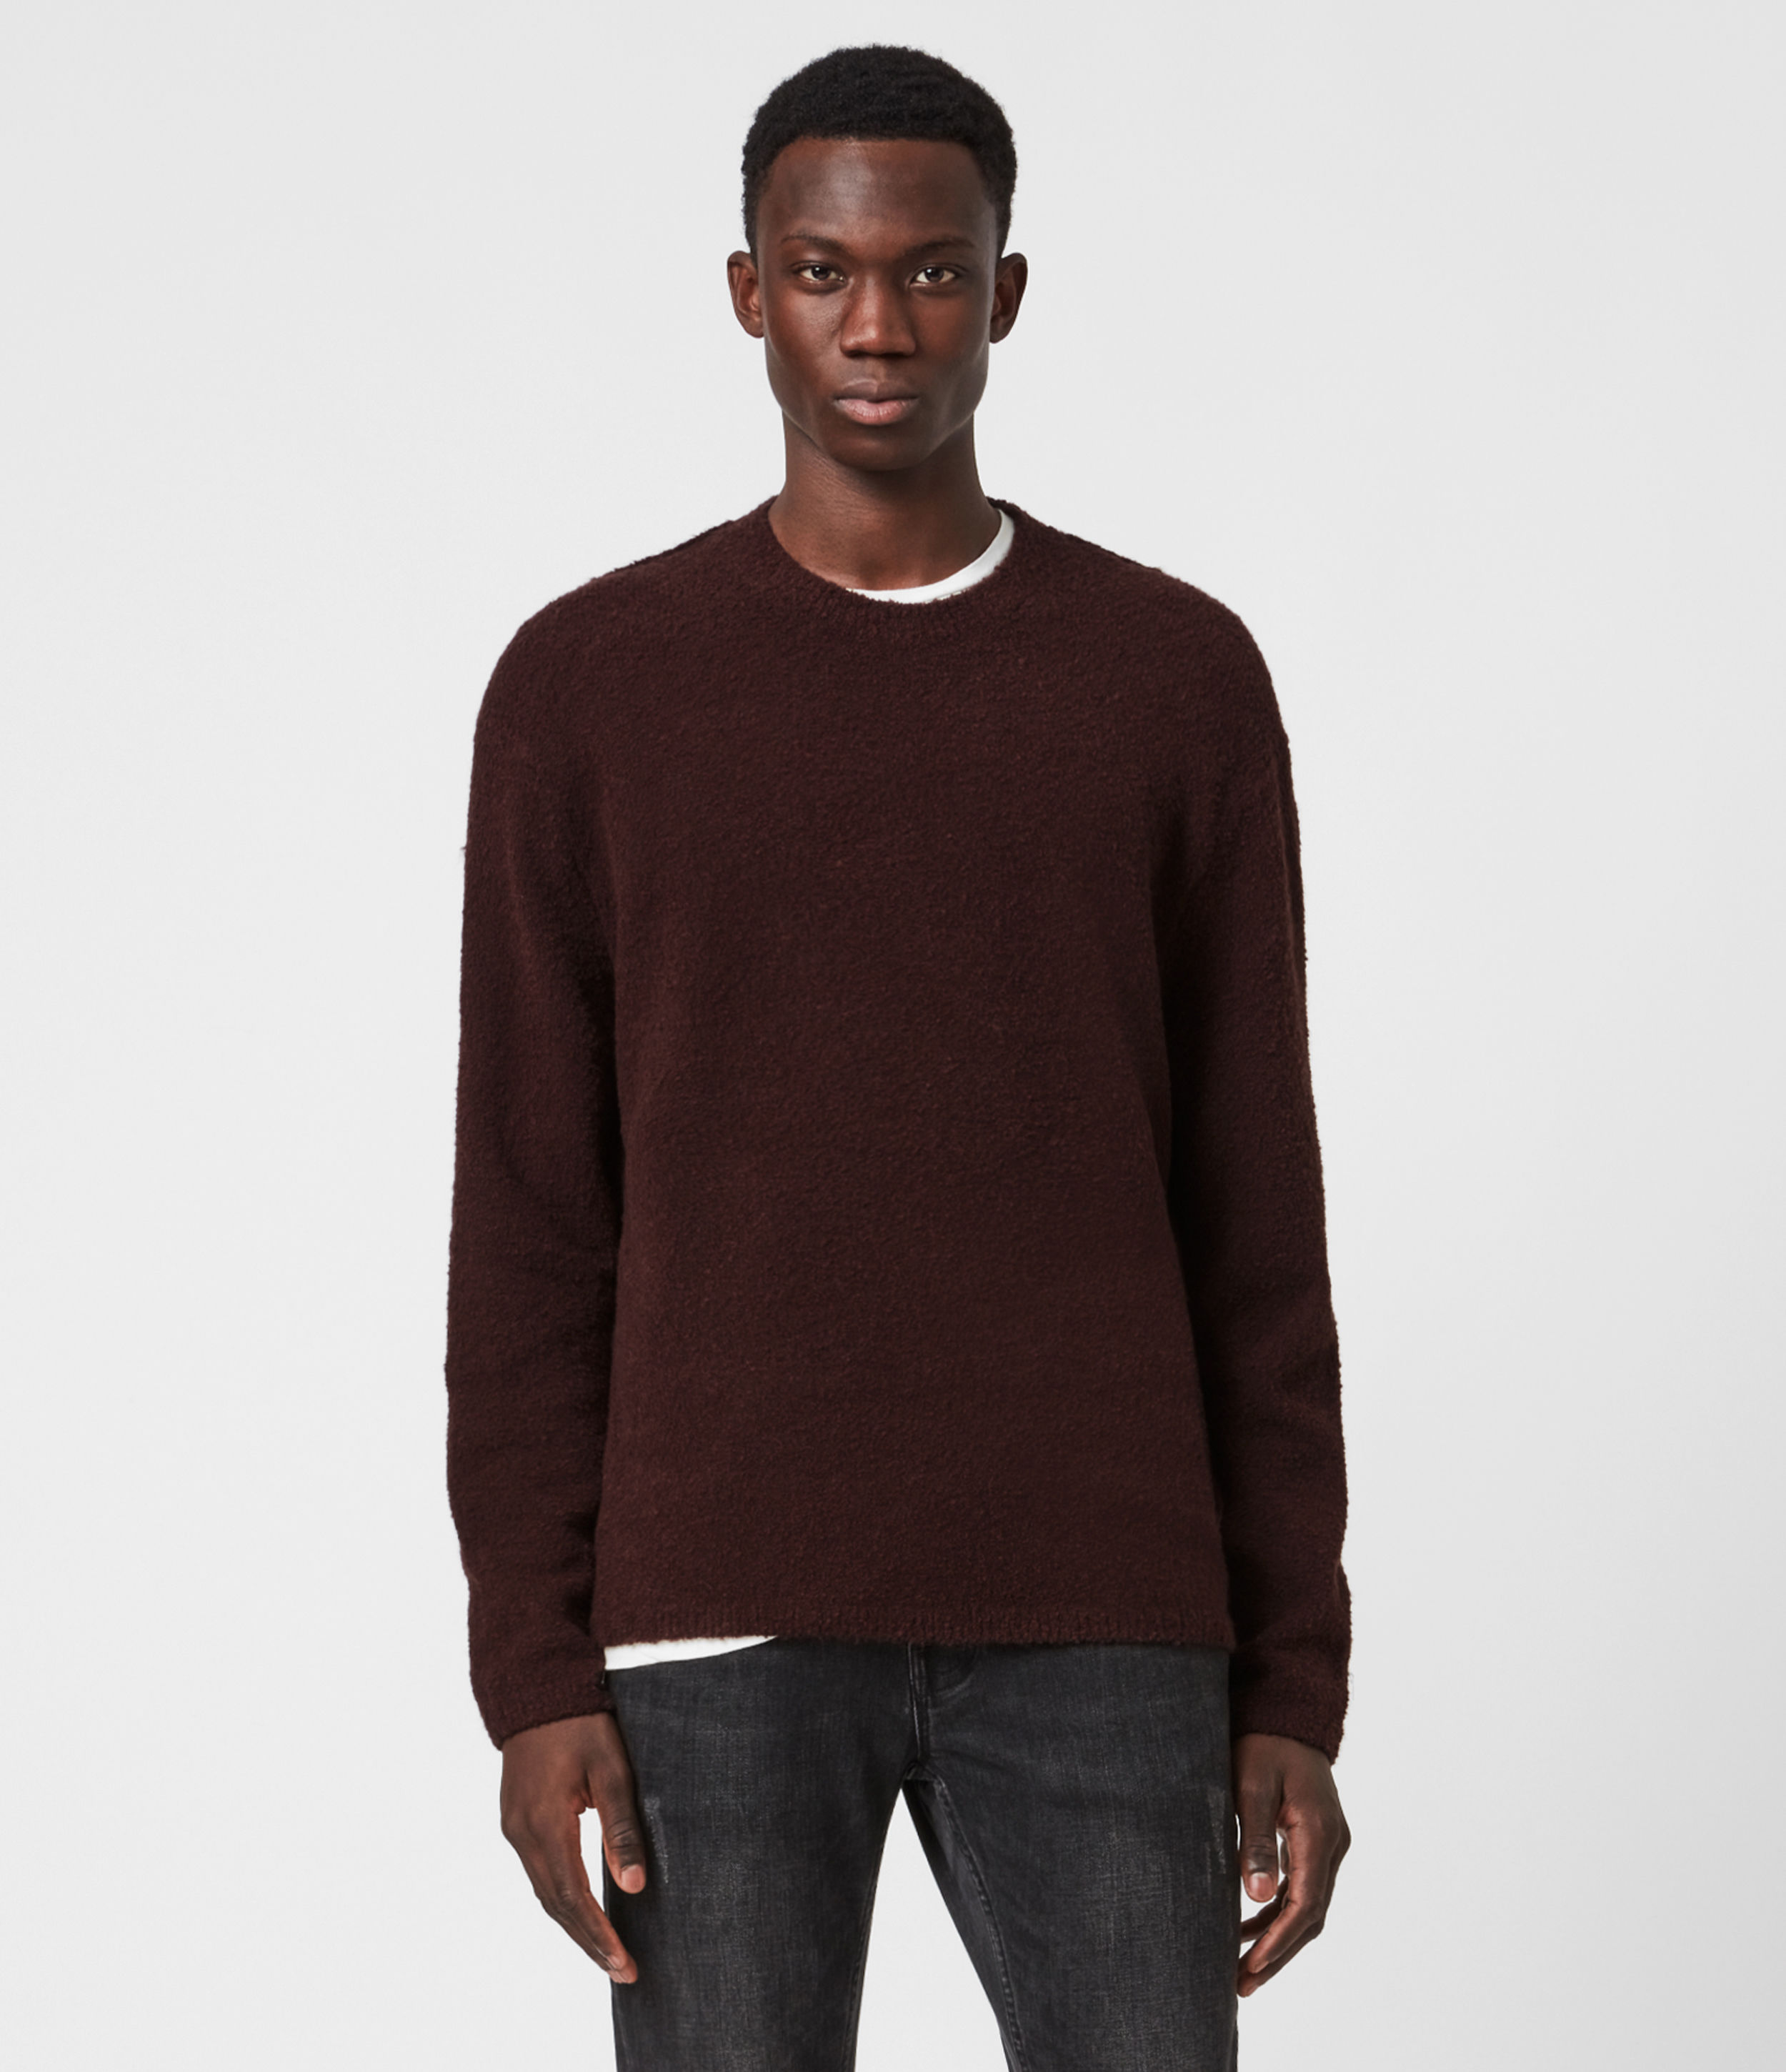 AllSaints Men's Cotton Classic Eamont Crew Jumper, Red, Size: S